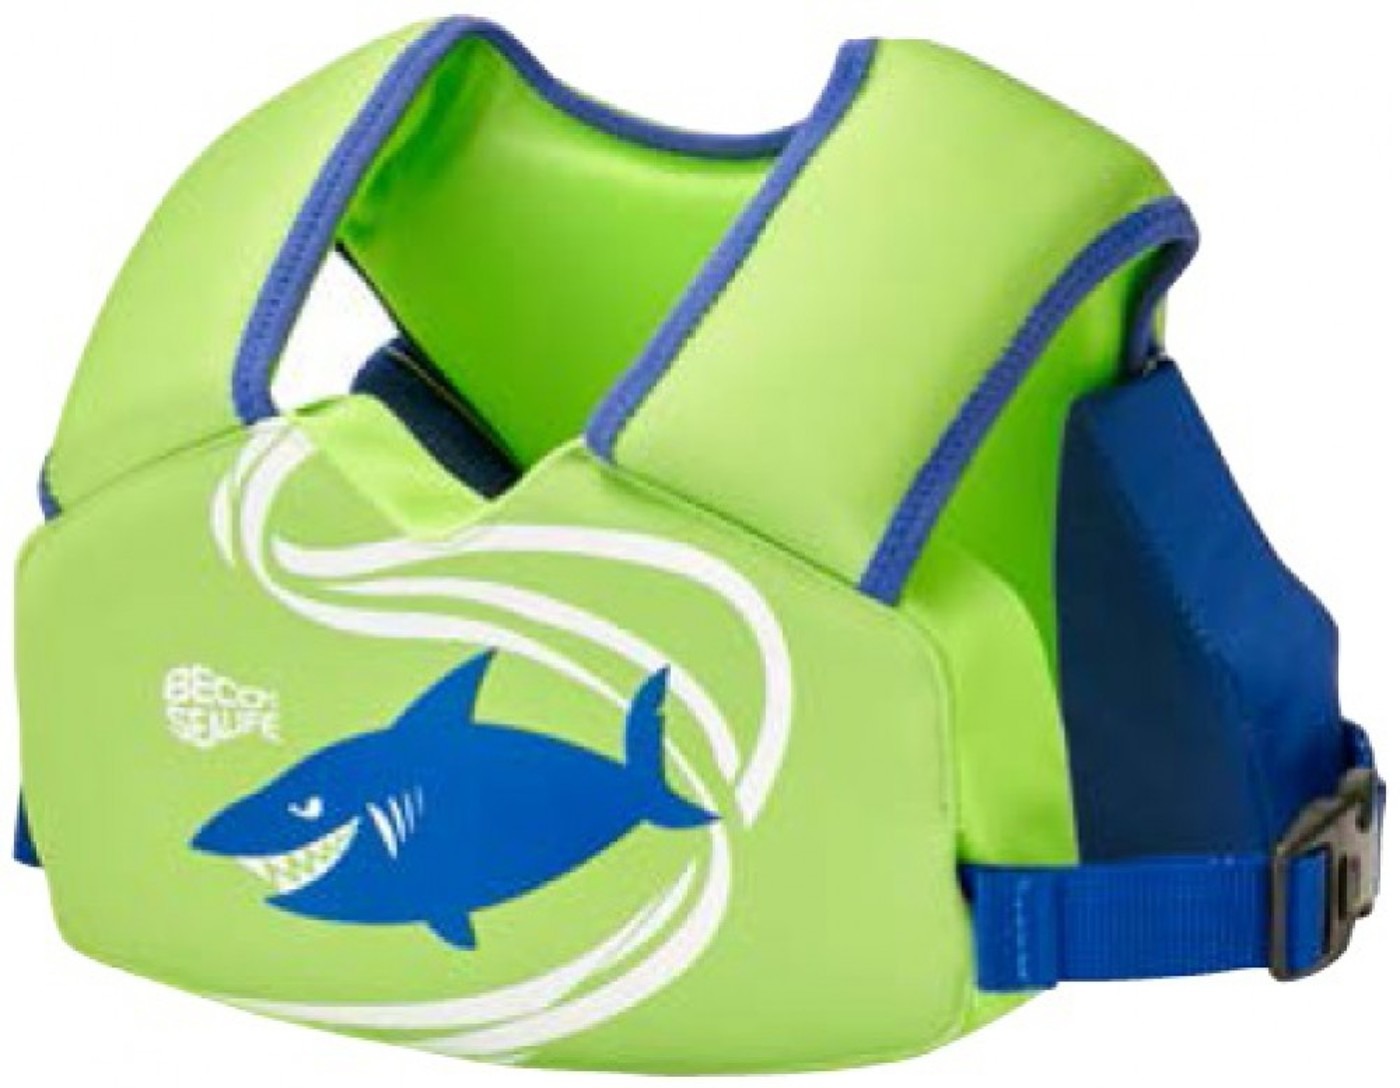 BECO SEALIFE® Schwimmweste EASY FIT - Kinder